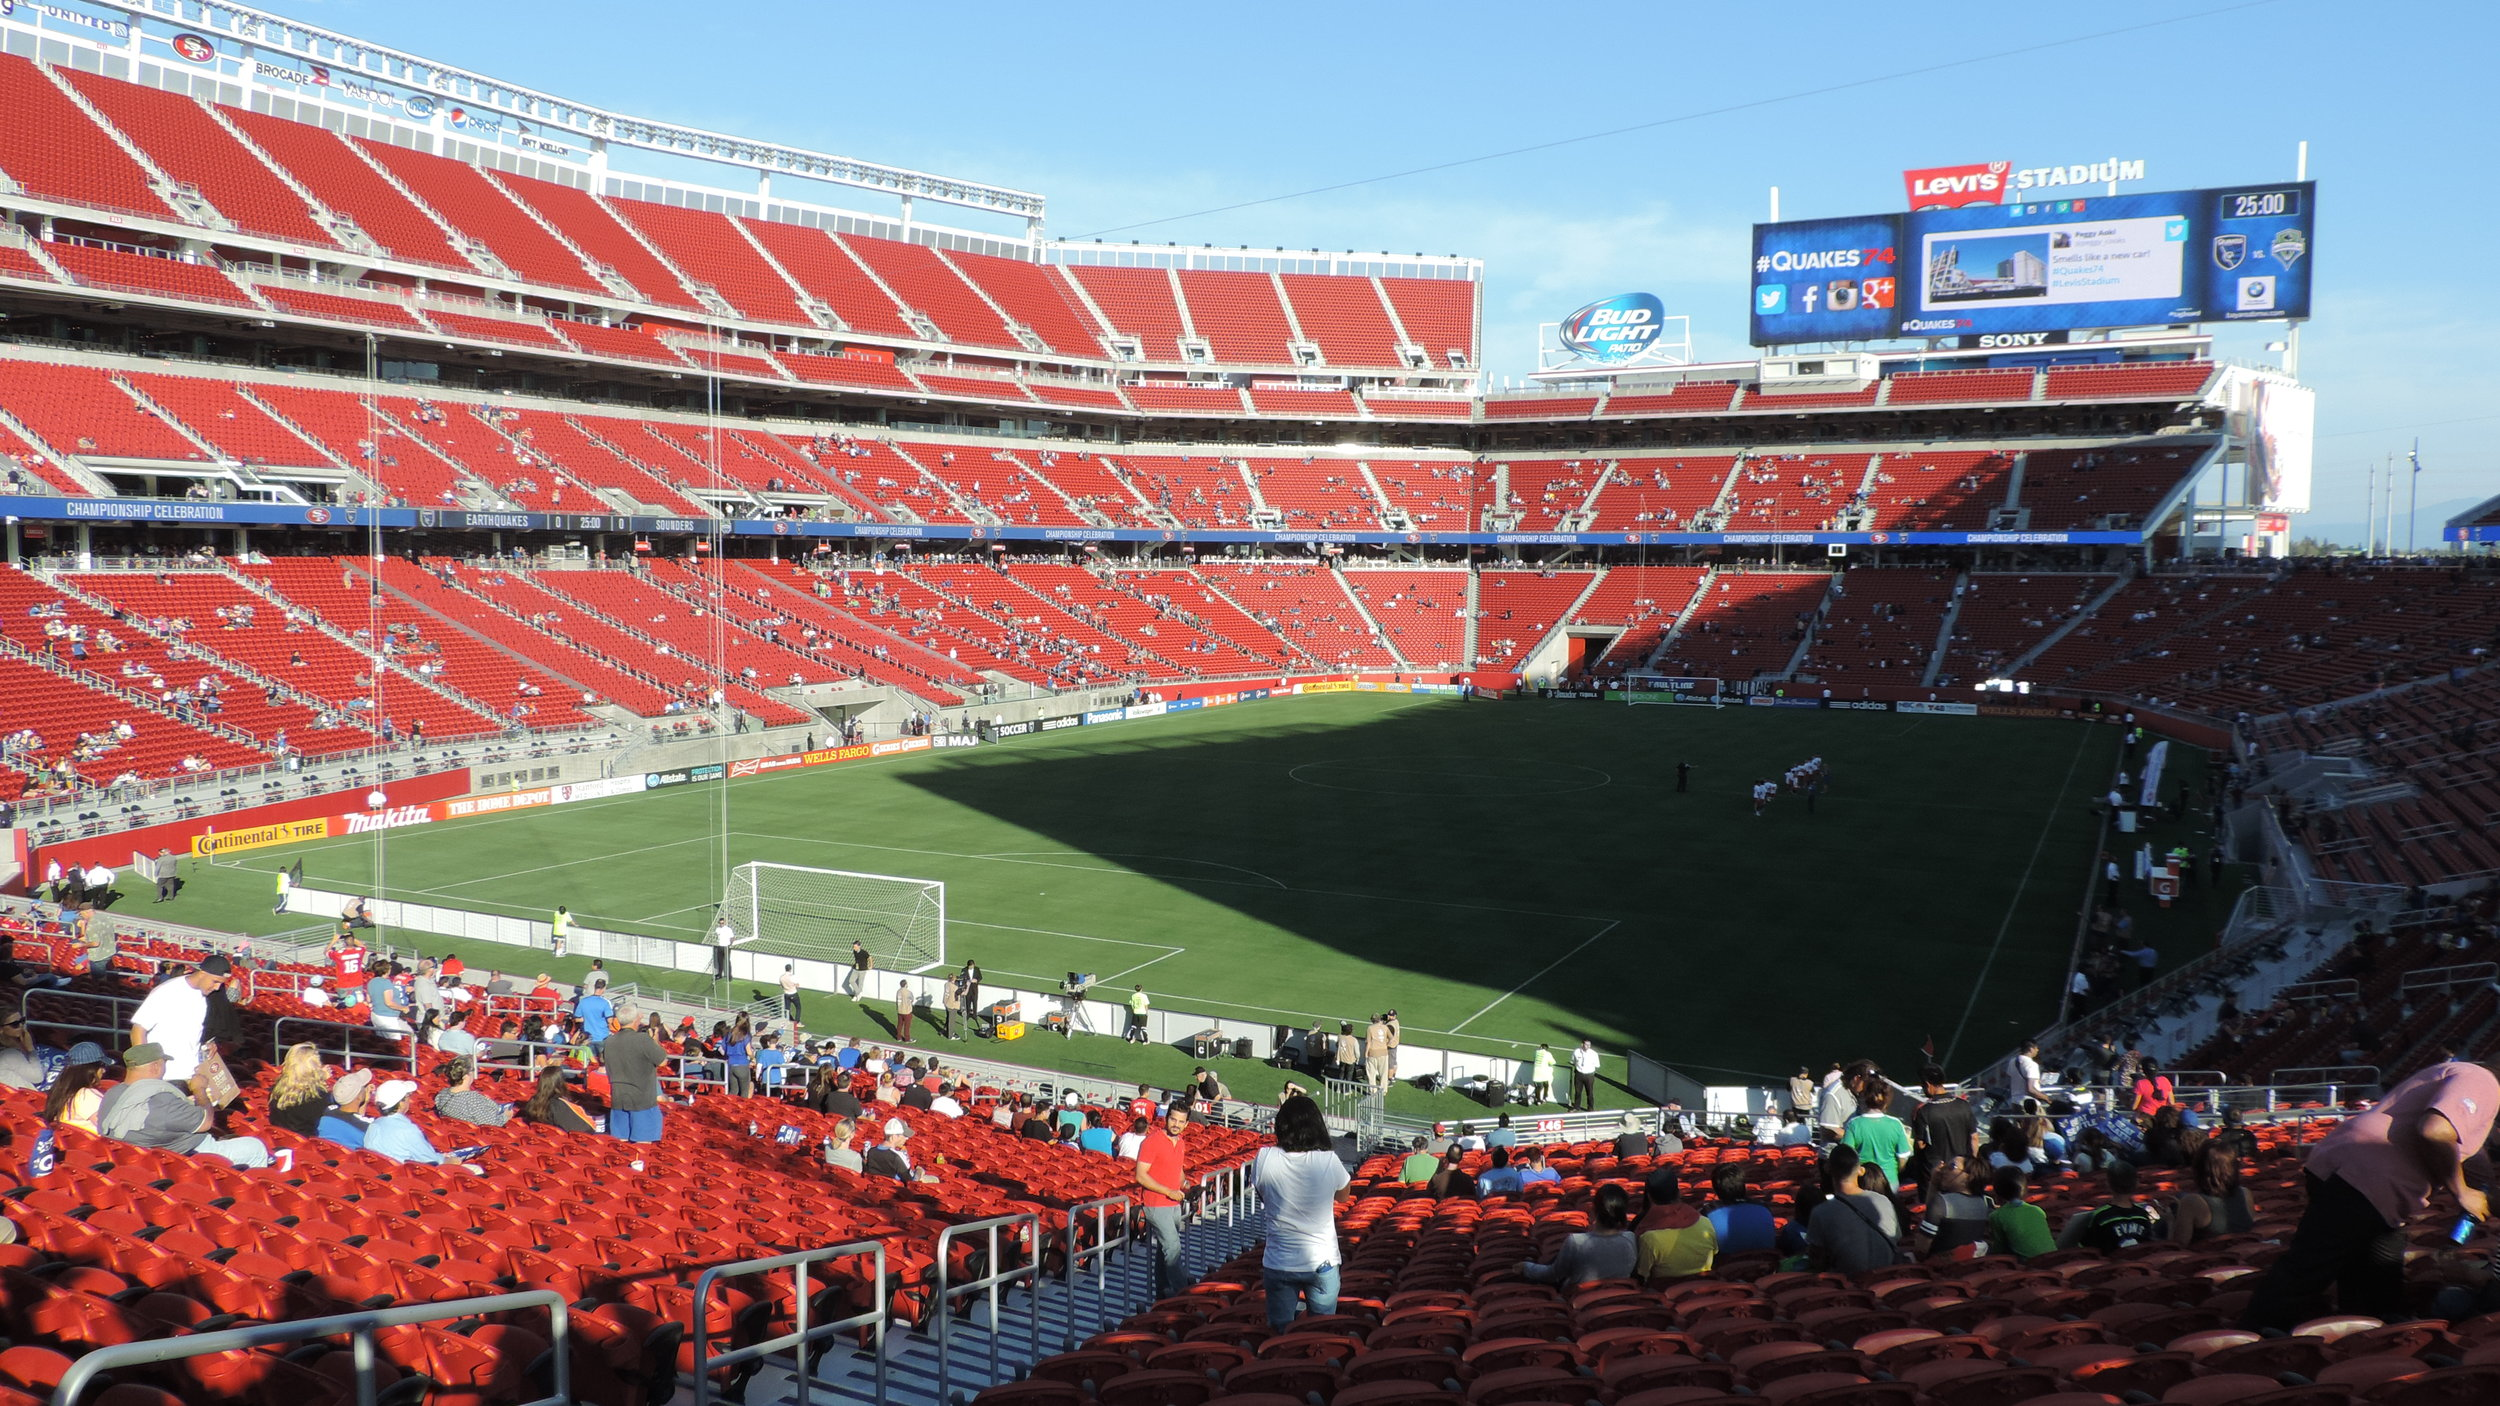 - Levi's Stadium, home of the San Francisco 49ers since the summer of 2014, has an impressive 375 kW solar array, which helped energize Super Bowl L between the Carolina Panthers and Denver Broncos.